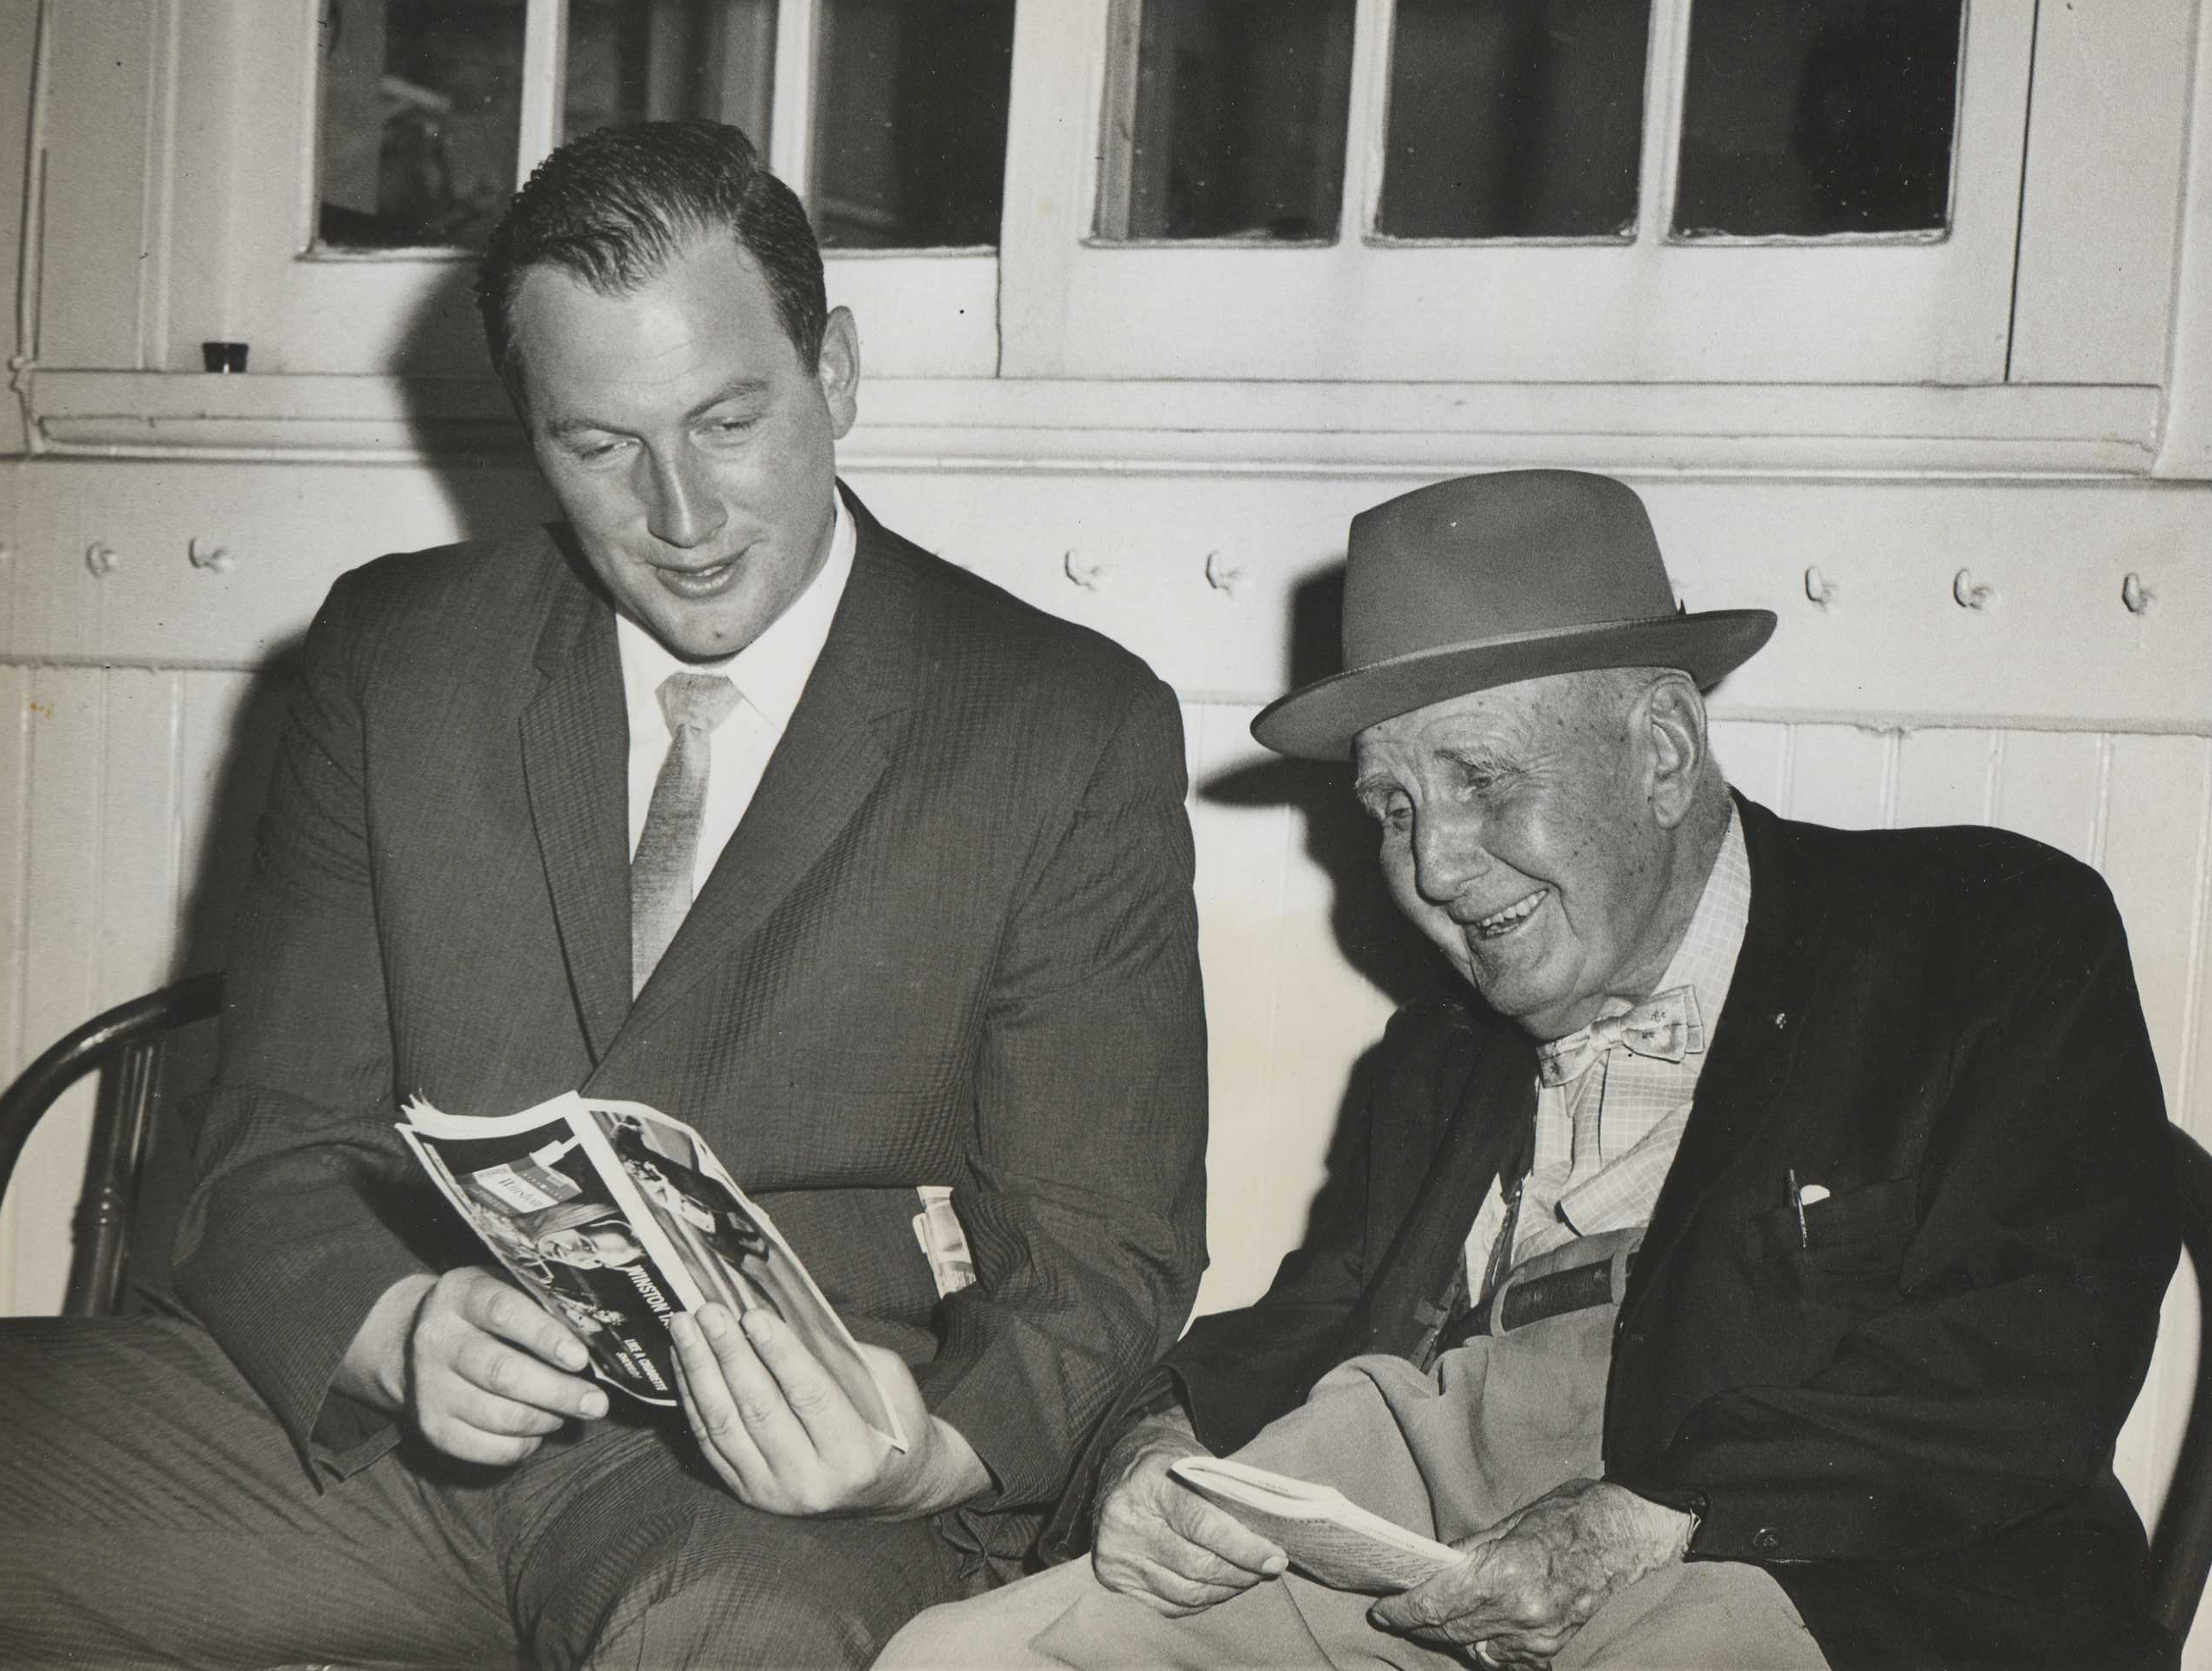 Allen Jerkens, left, and Sunny Jim Fitzsimmons at Aqueduct, 1962 (Museum Collection)